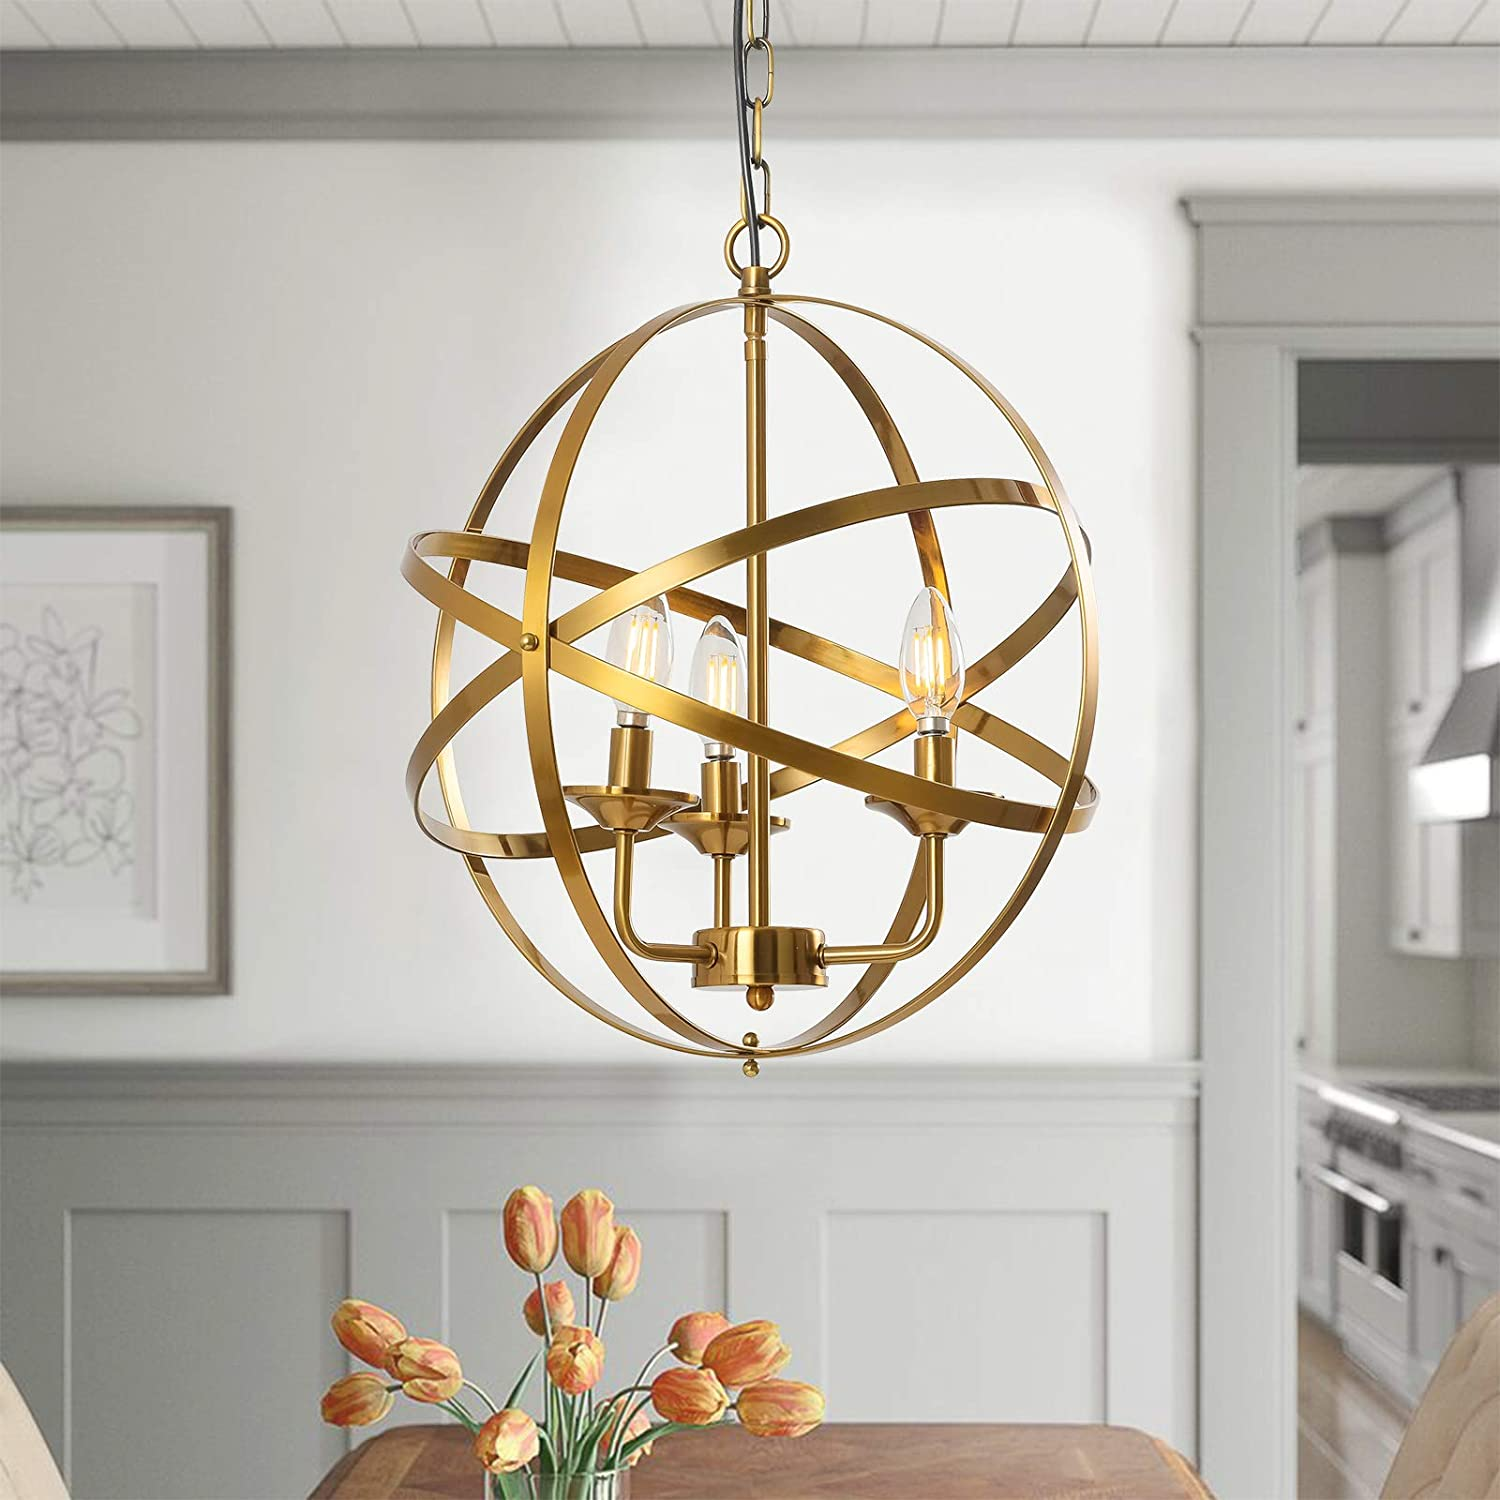 Popity home 9 Light Brass Gold Chandelier Hollow Out Metal Spherical  Pendant Light, Globe Hanging Lighting Fixture for Kitchen Island Dining  Room ...